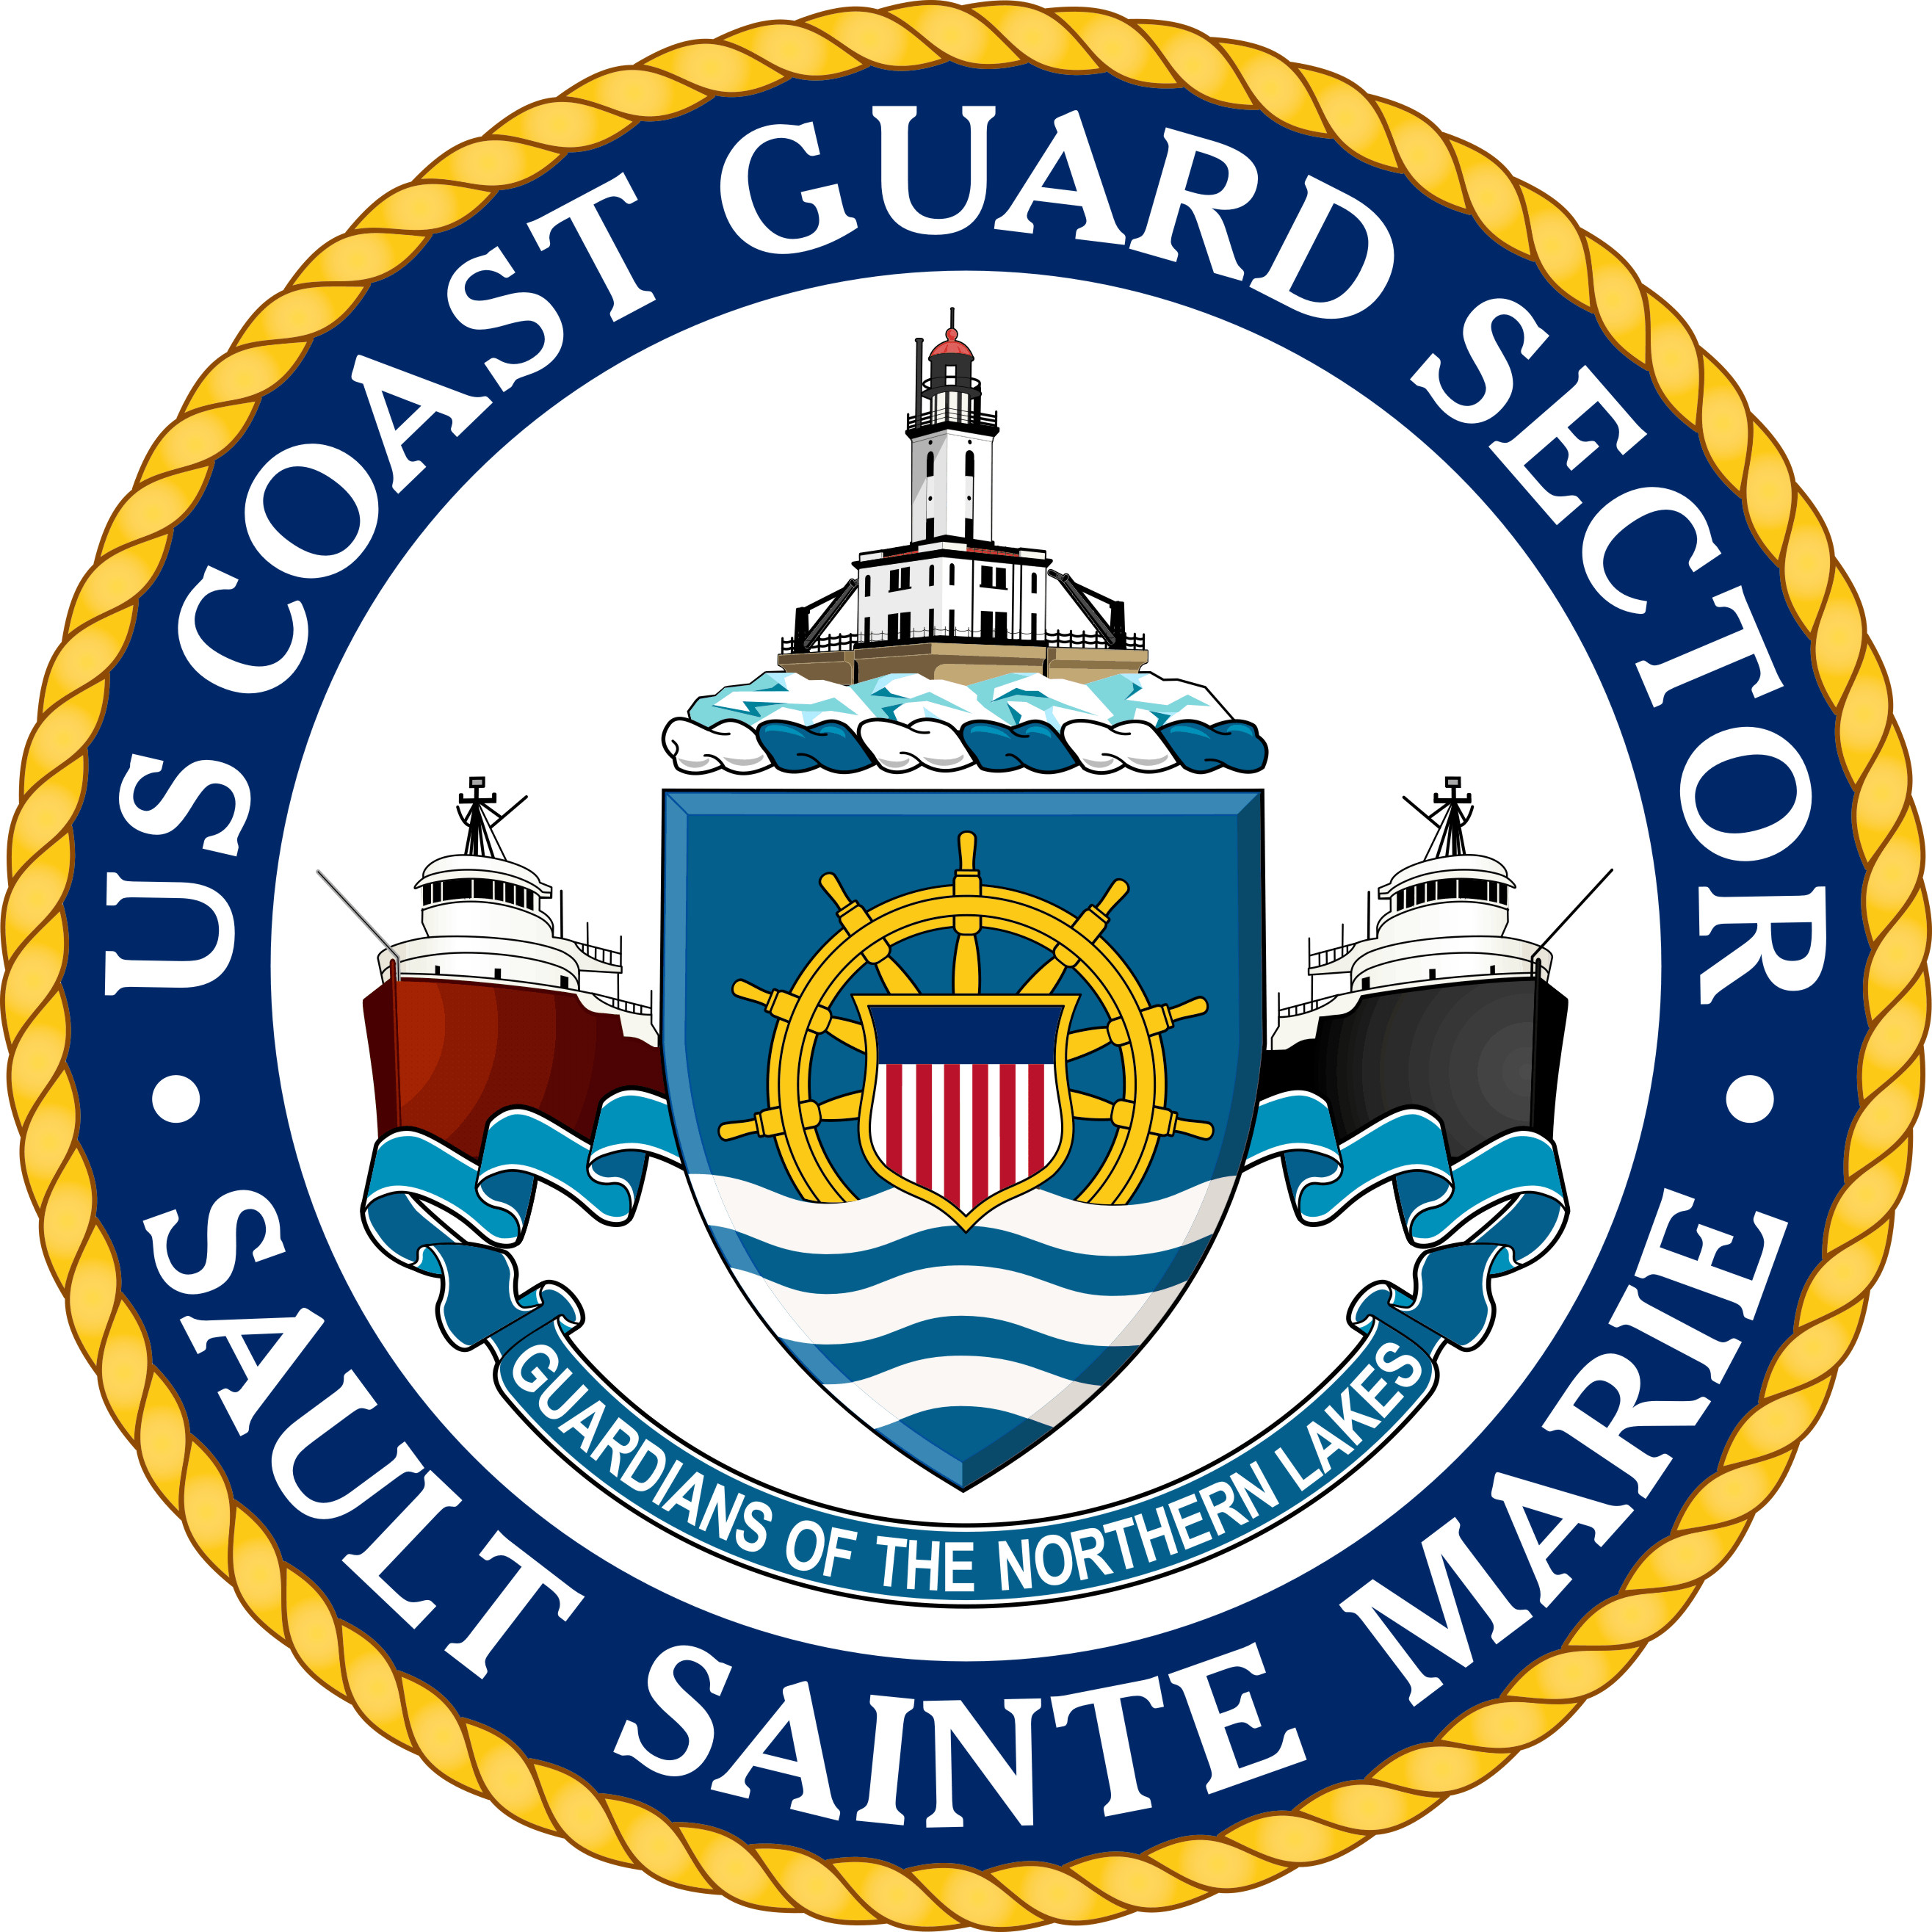 united states coast guard The world's premiere source for united states information and resources about the uscg, rules, regulations, policy, pay, jobs, forms, pay, locations, and more.